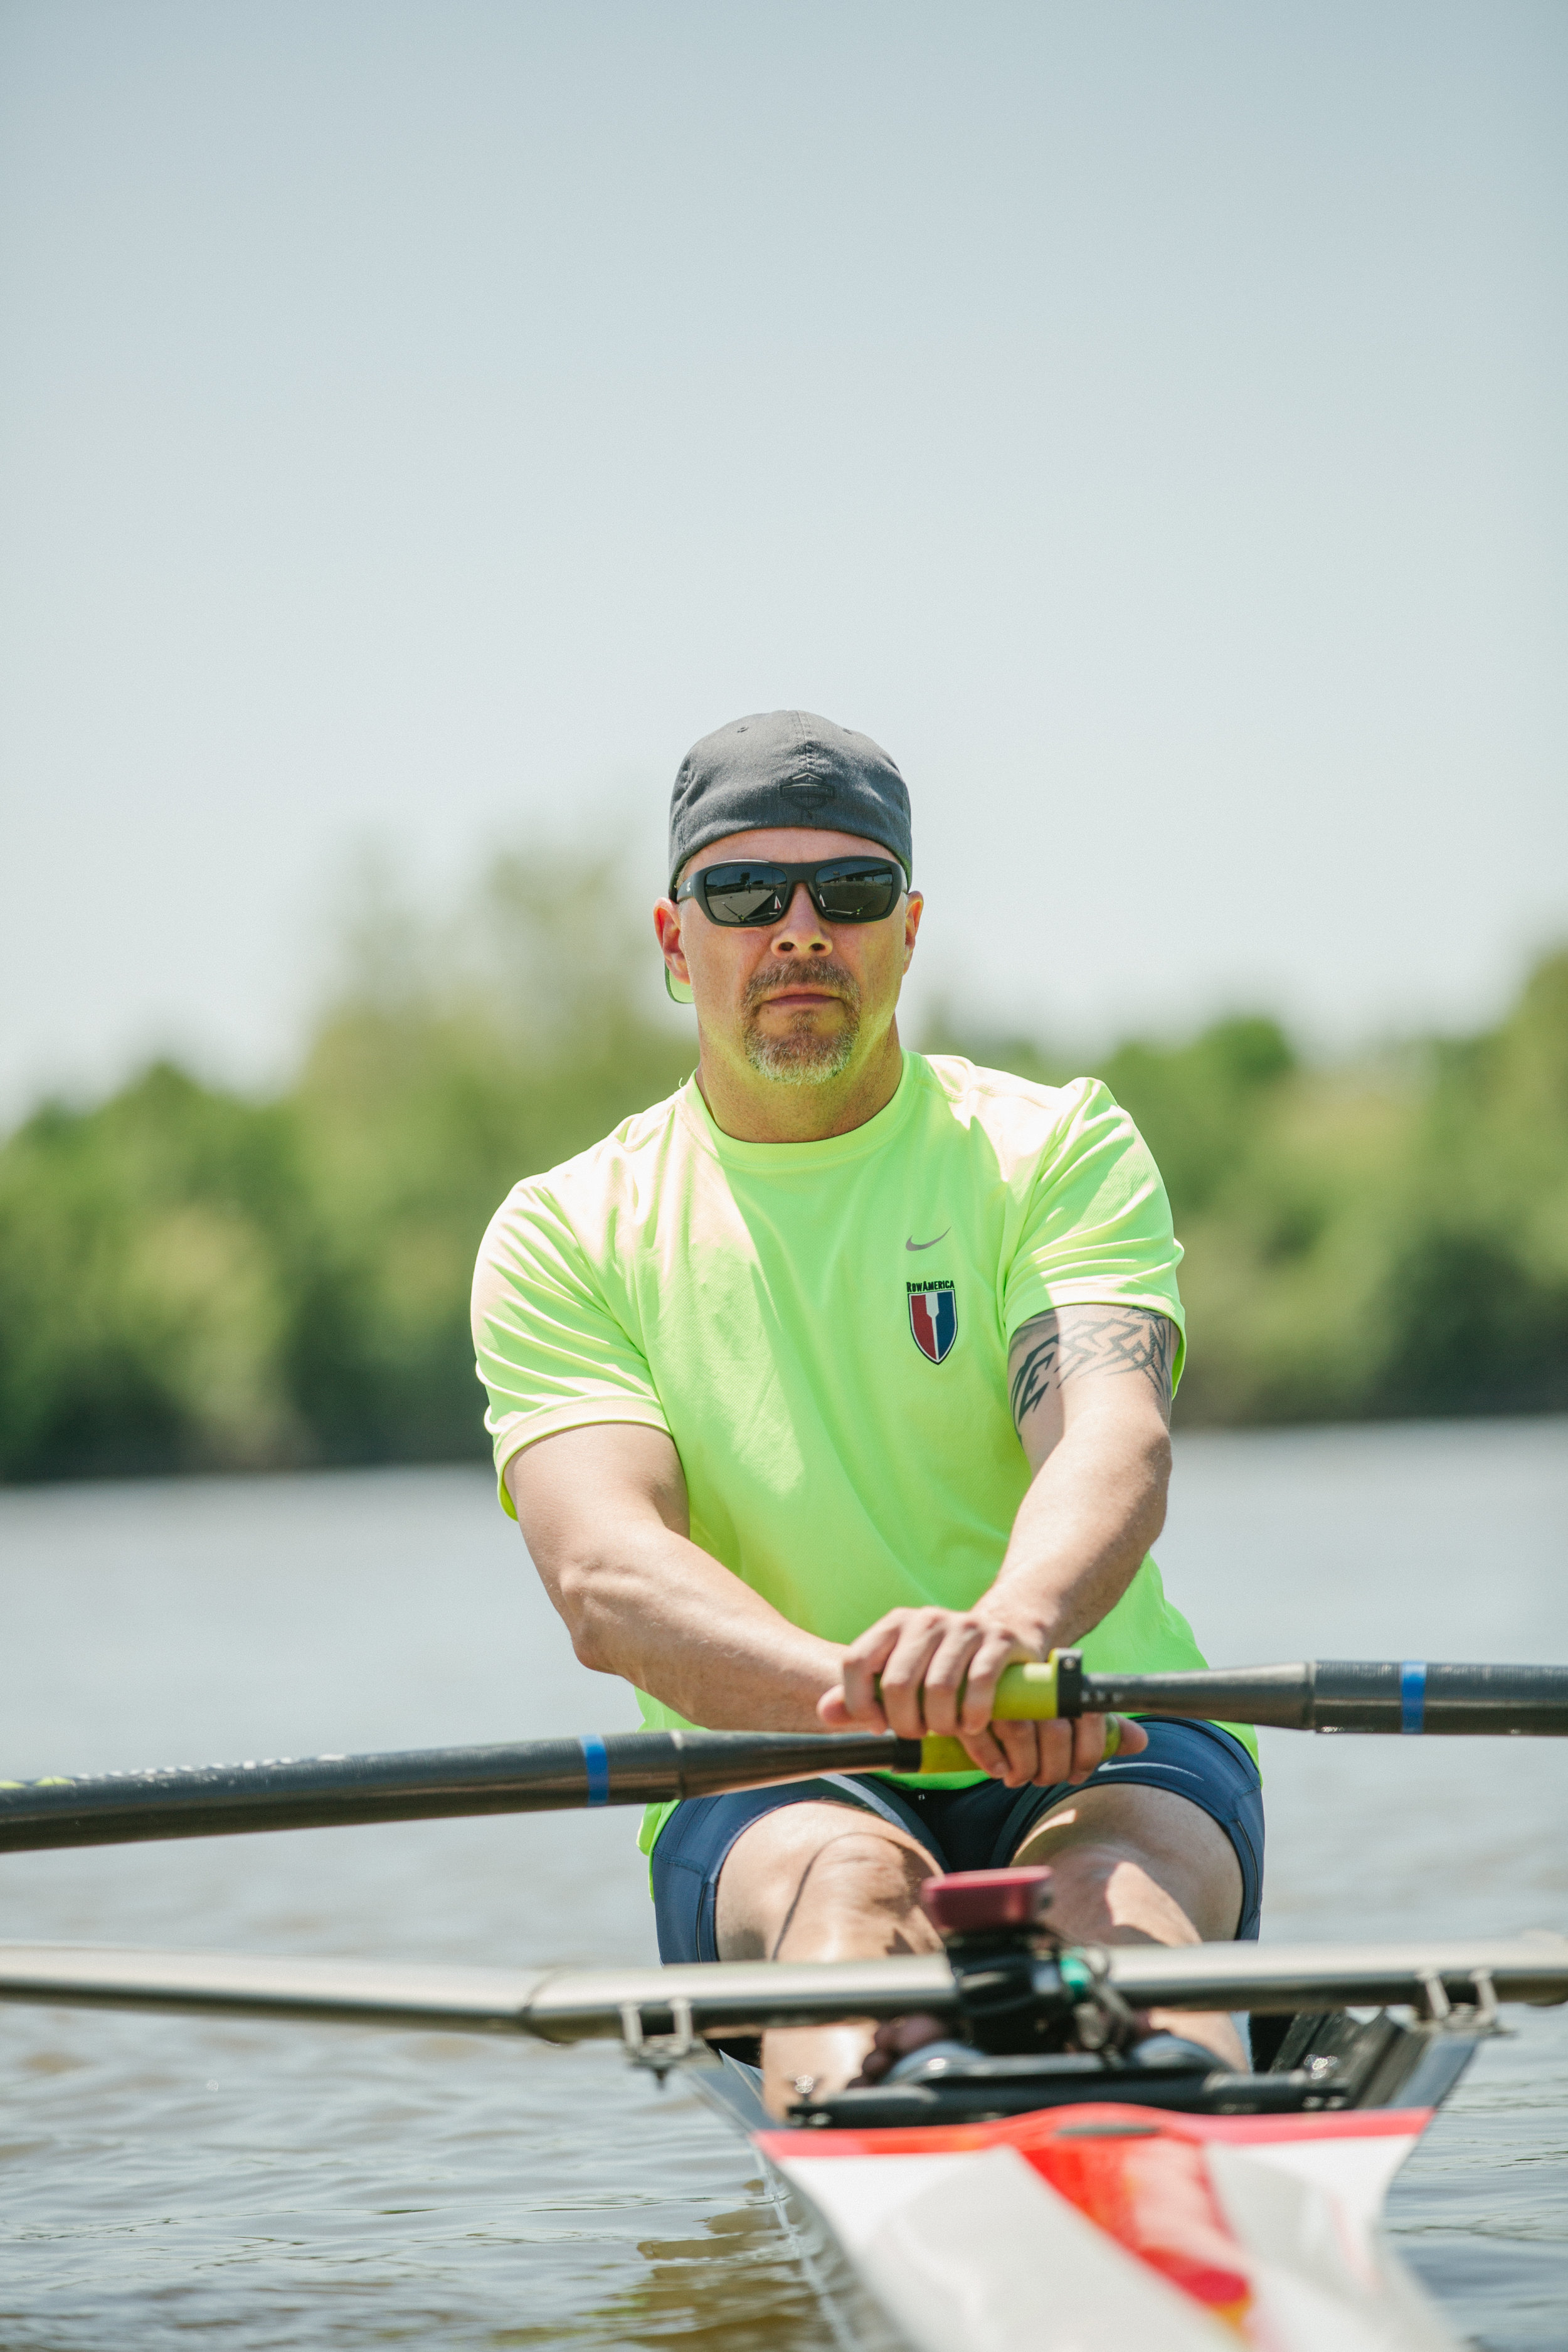 Ted Riedeburg, the director and head coach of Rock City Rowing, gets settled in for a little rowing practice.